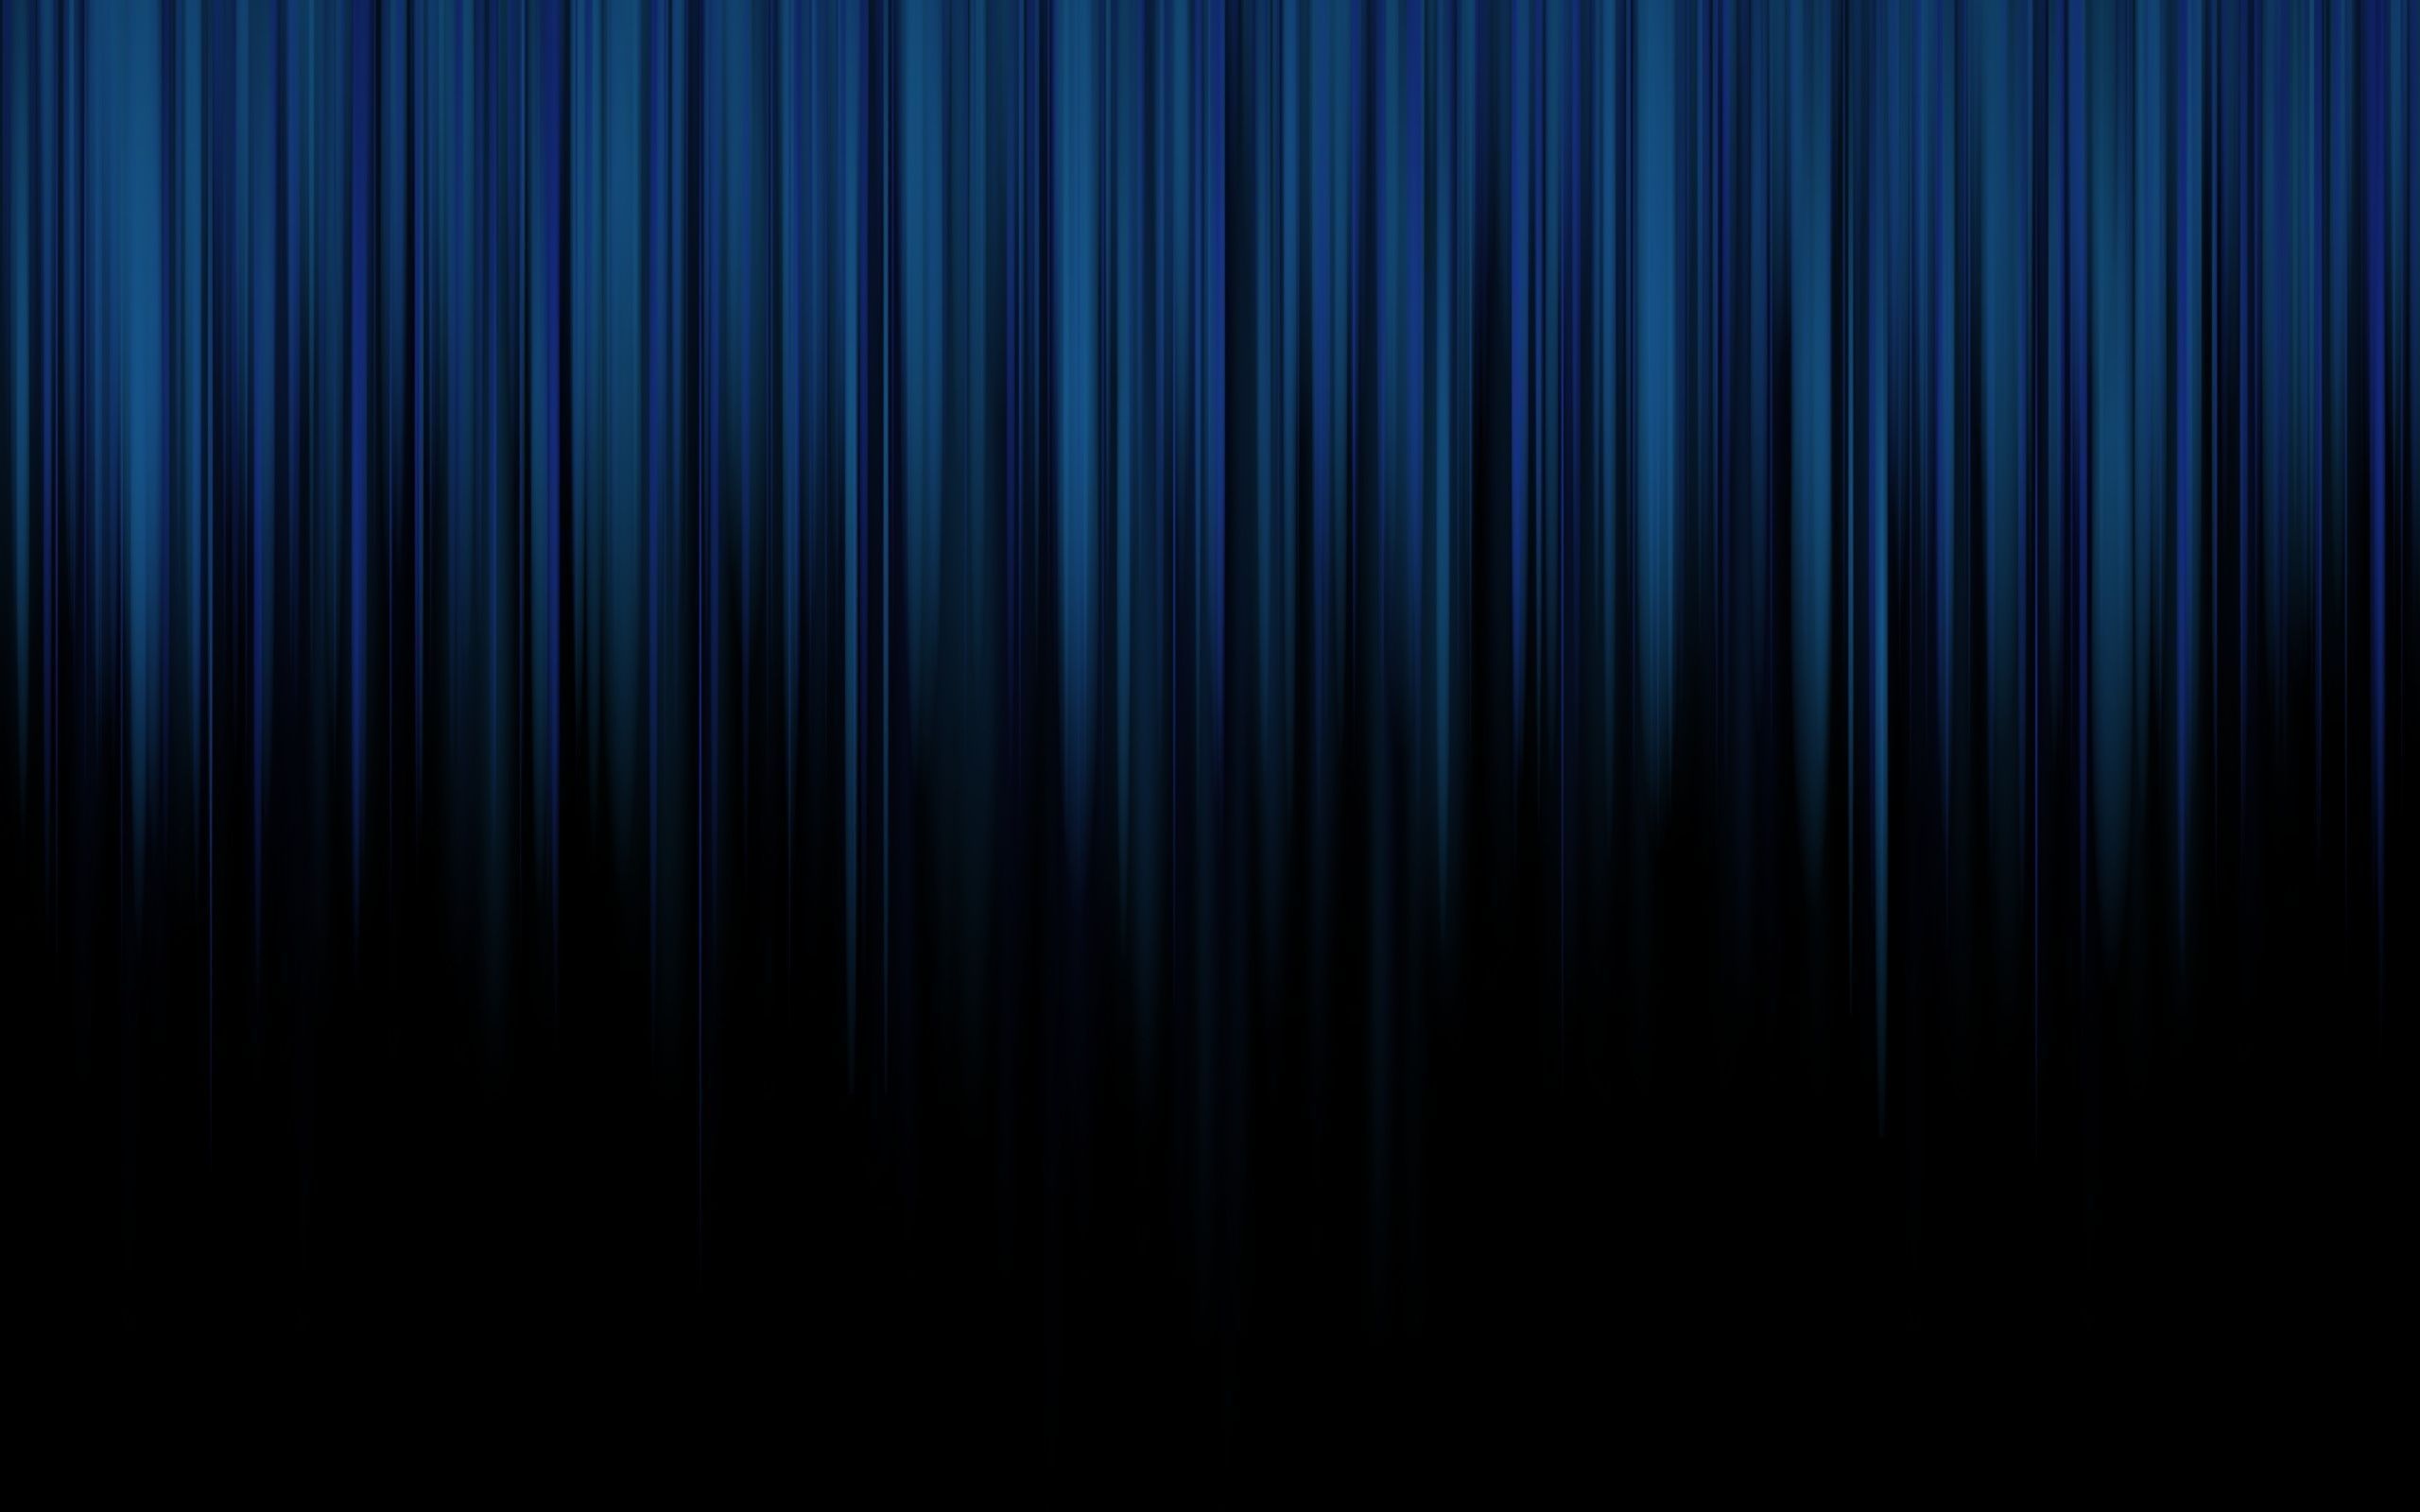 Black and blue background wallpaper for Dark blue wallpaper for walls